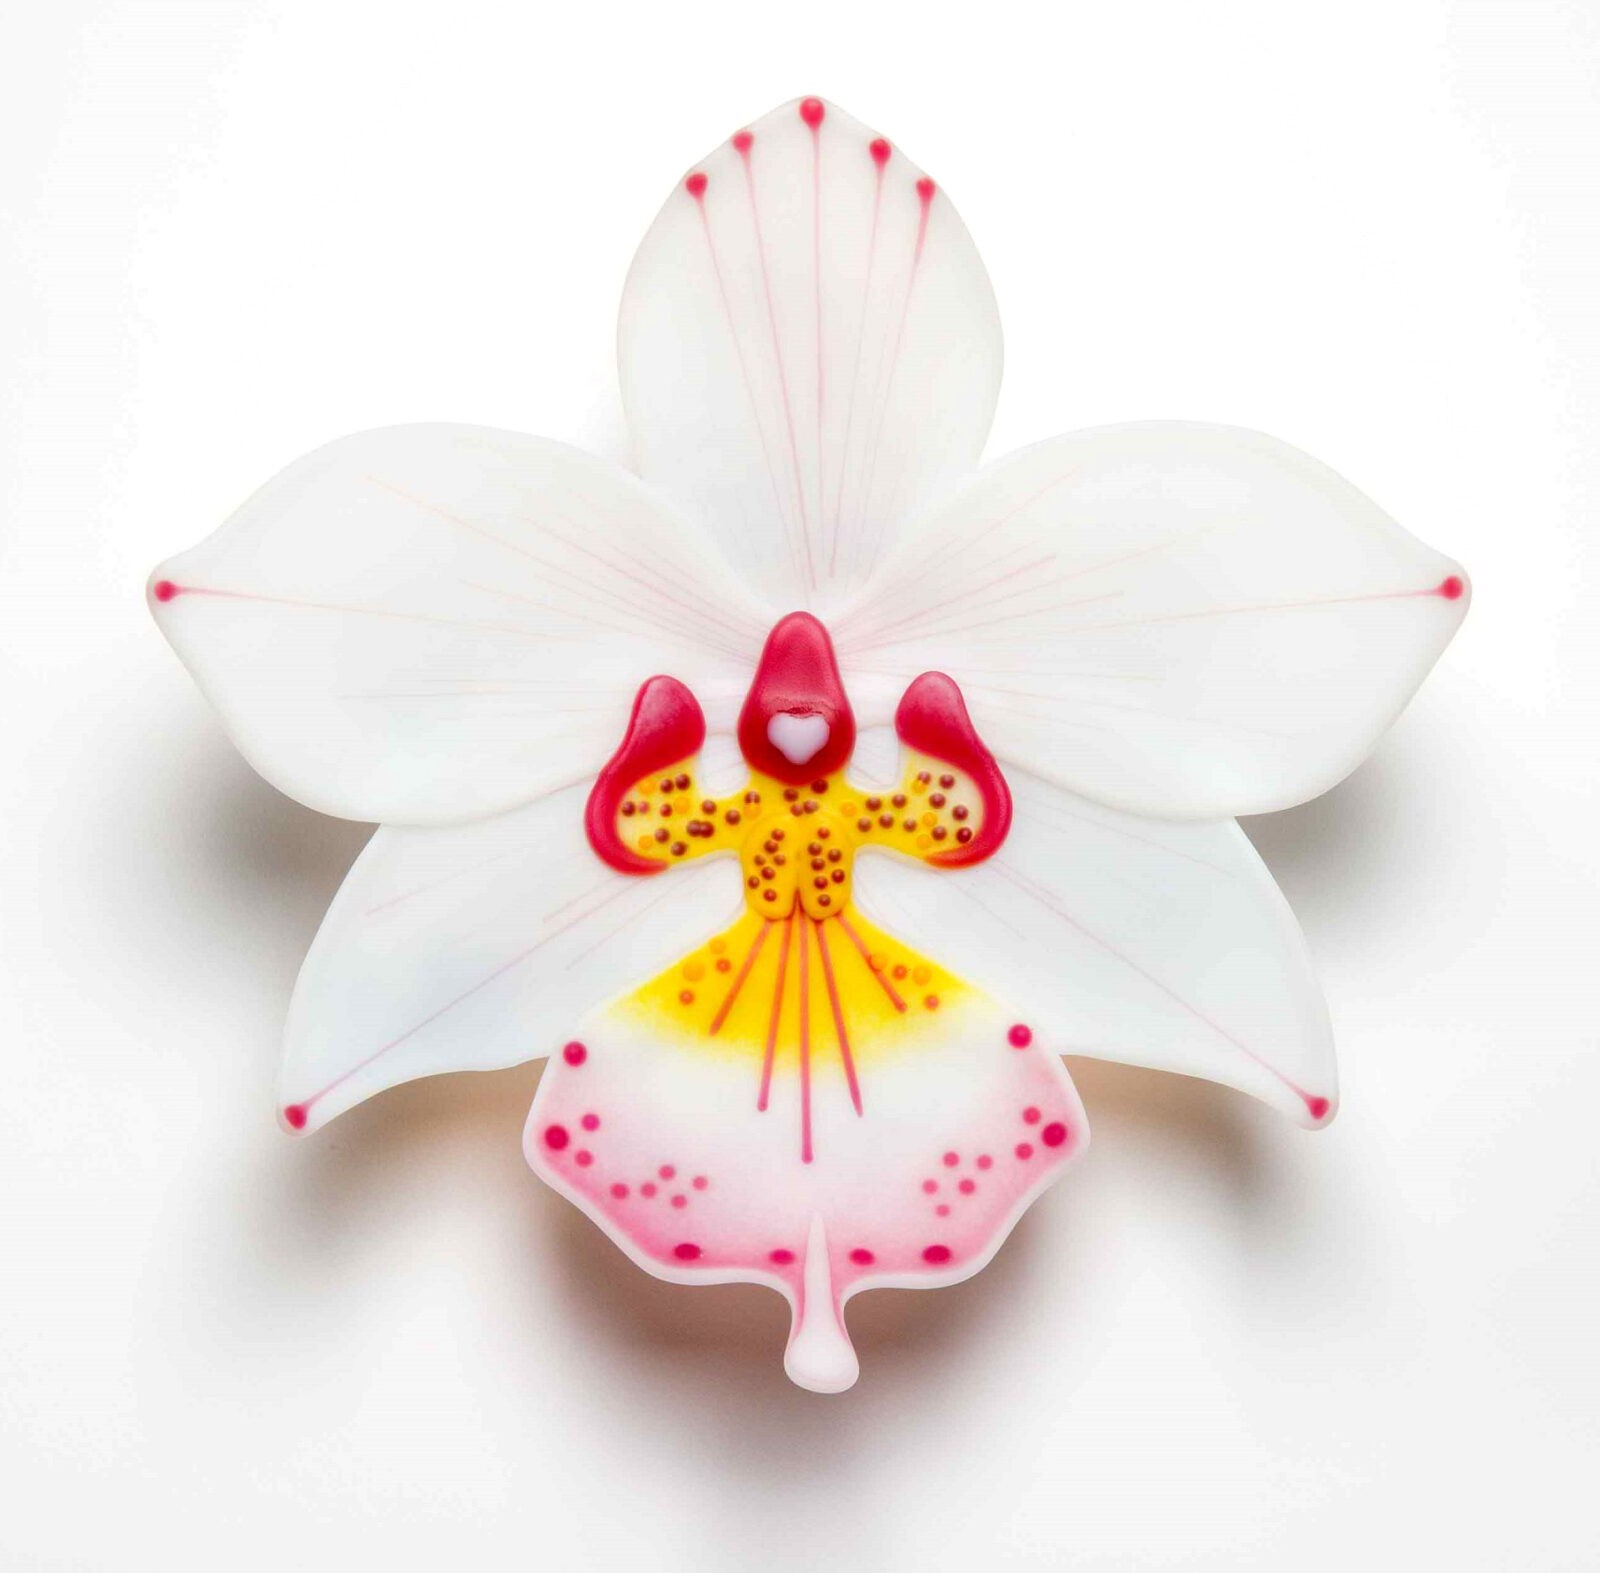 Luscious Handmade Glass Orchids by Laura Hart Reflect Plants' Exotic Beauty